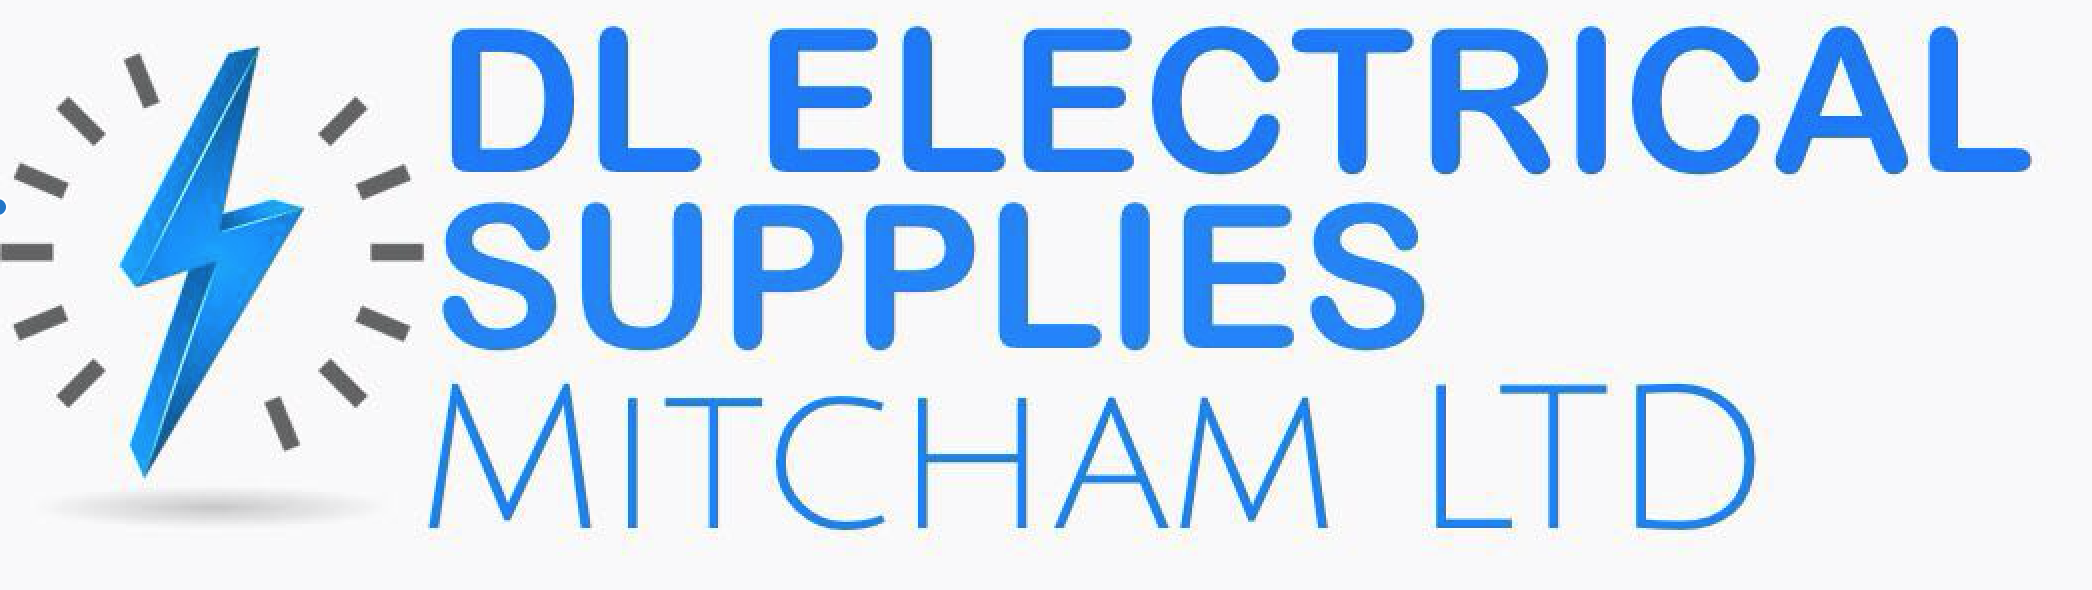 DL Electrical Supplies (Mitcham) Ltd - The Live Wire Company That ...